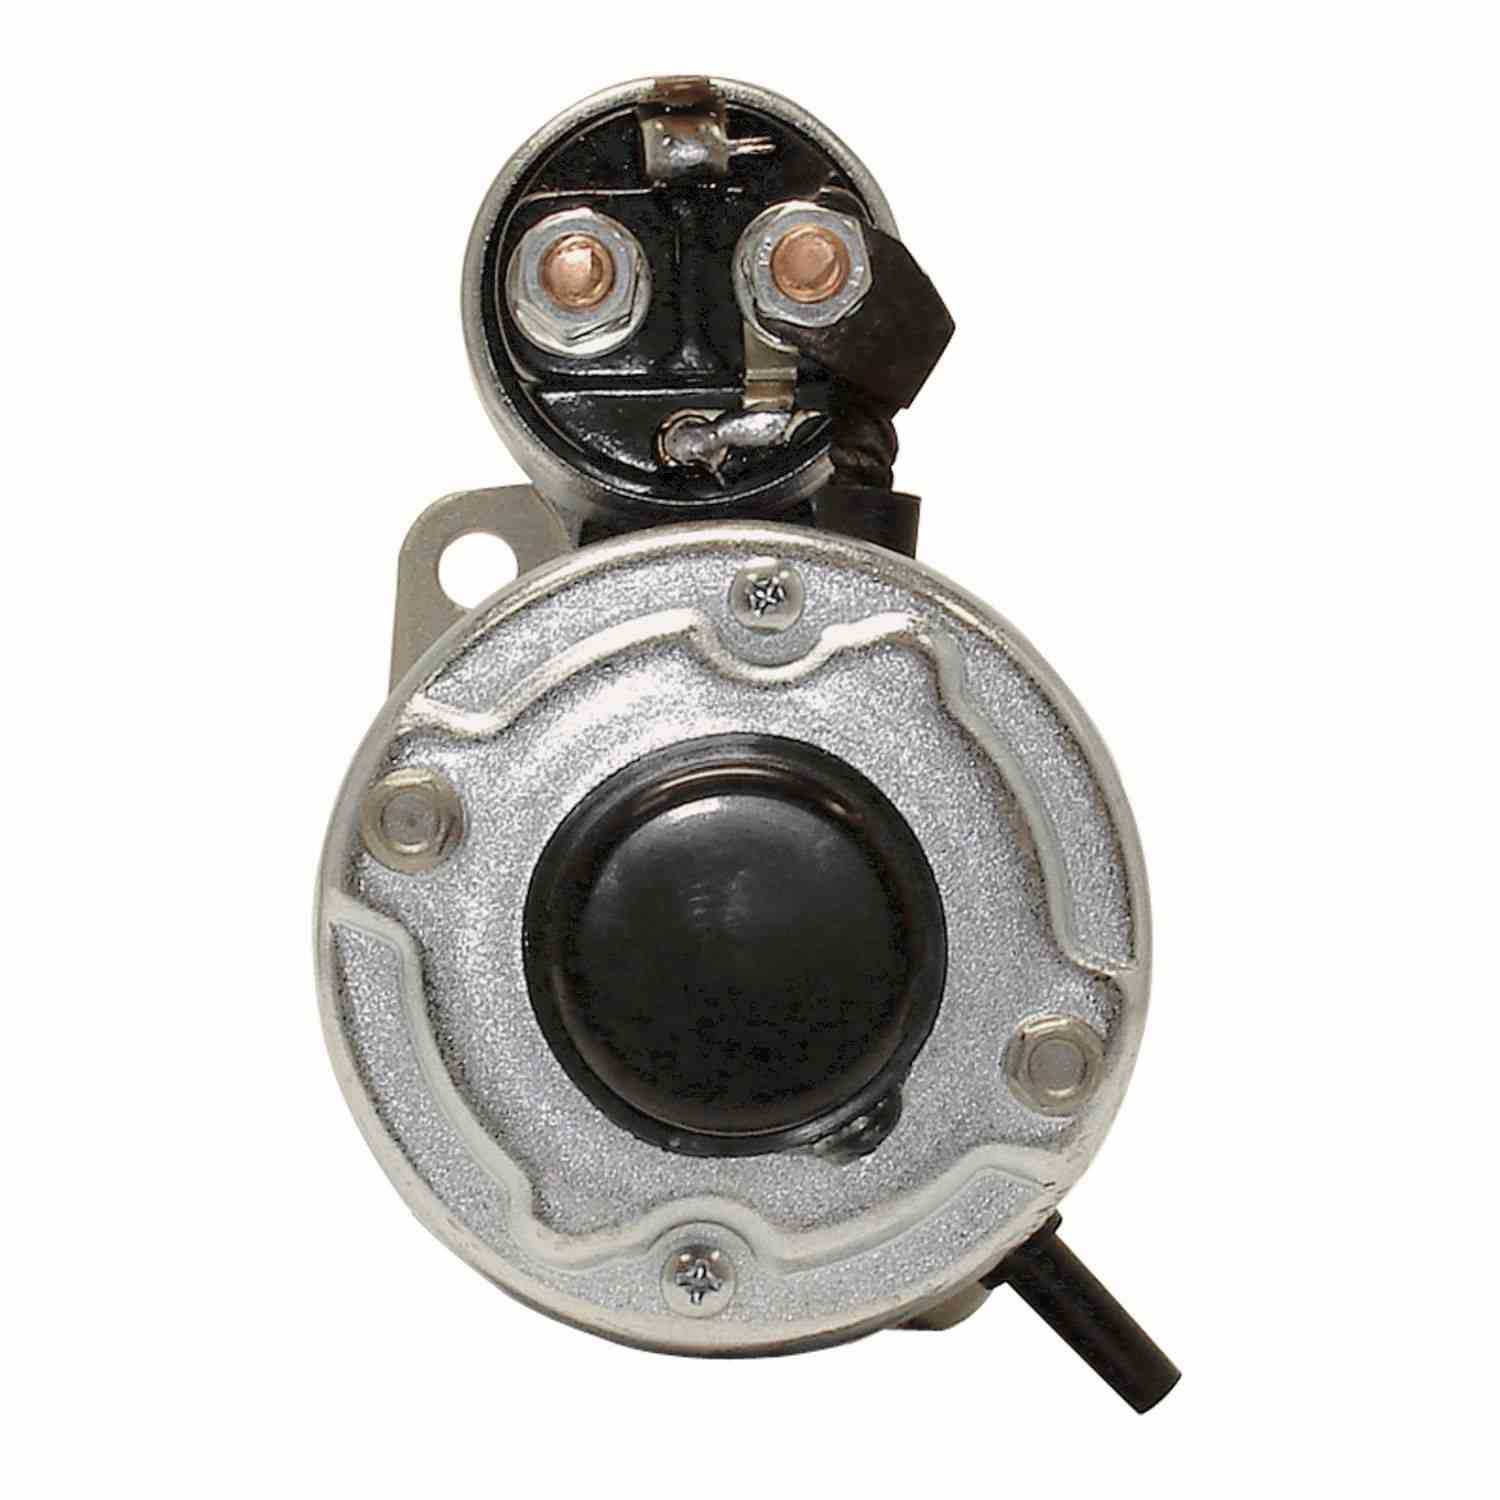 ACDELCO PROFESSIONAL - Reman Starter Motor - DCC 336-1410